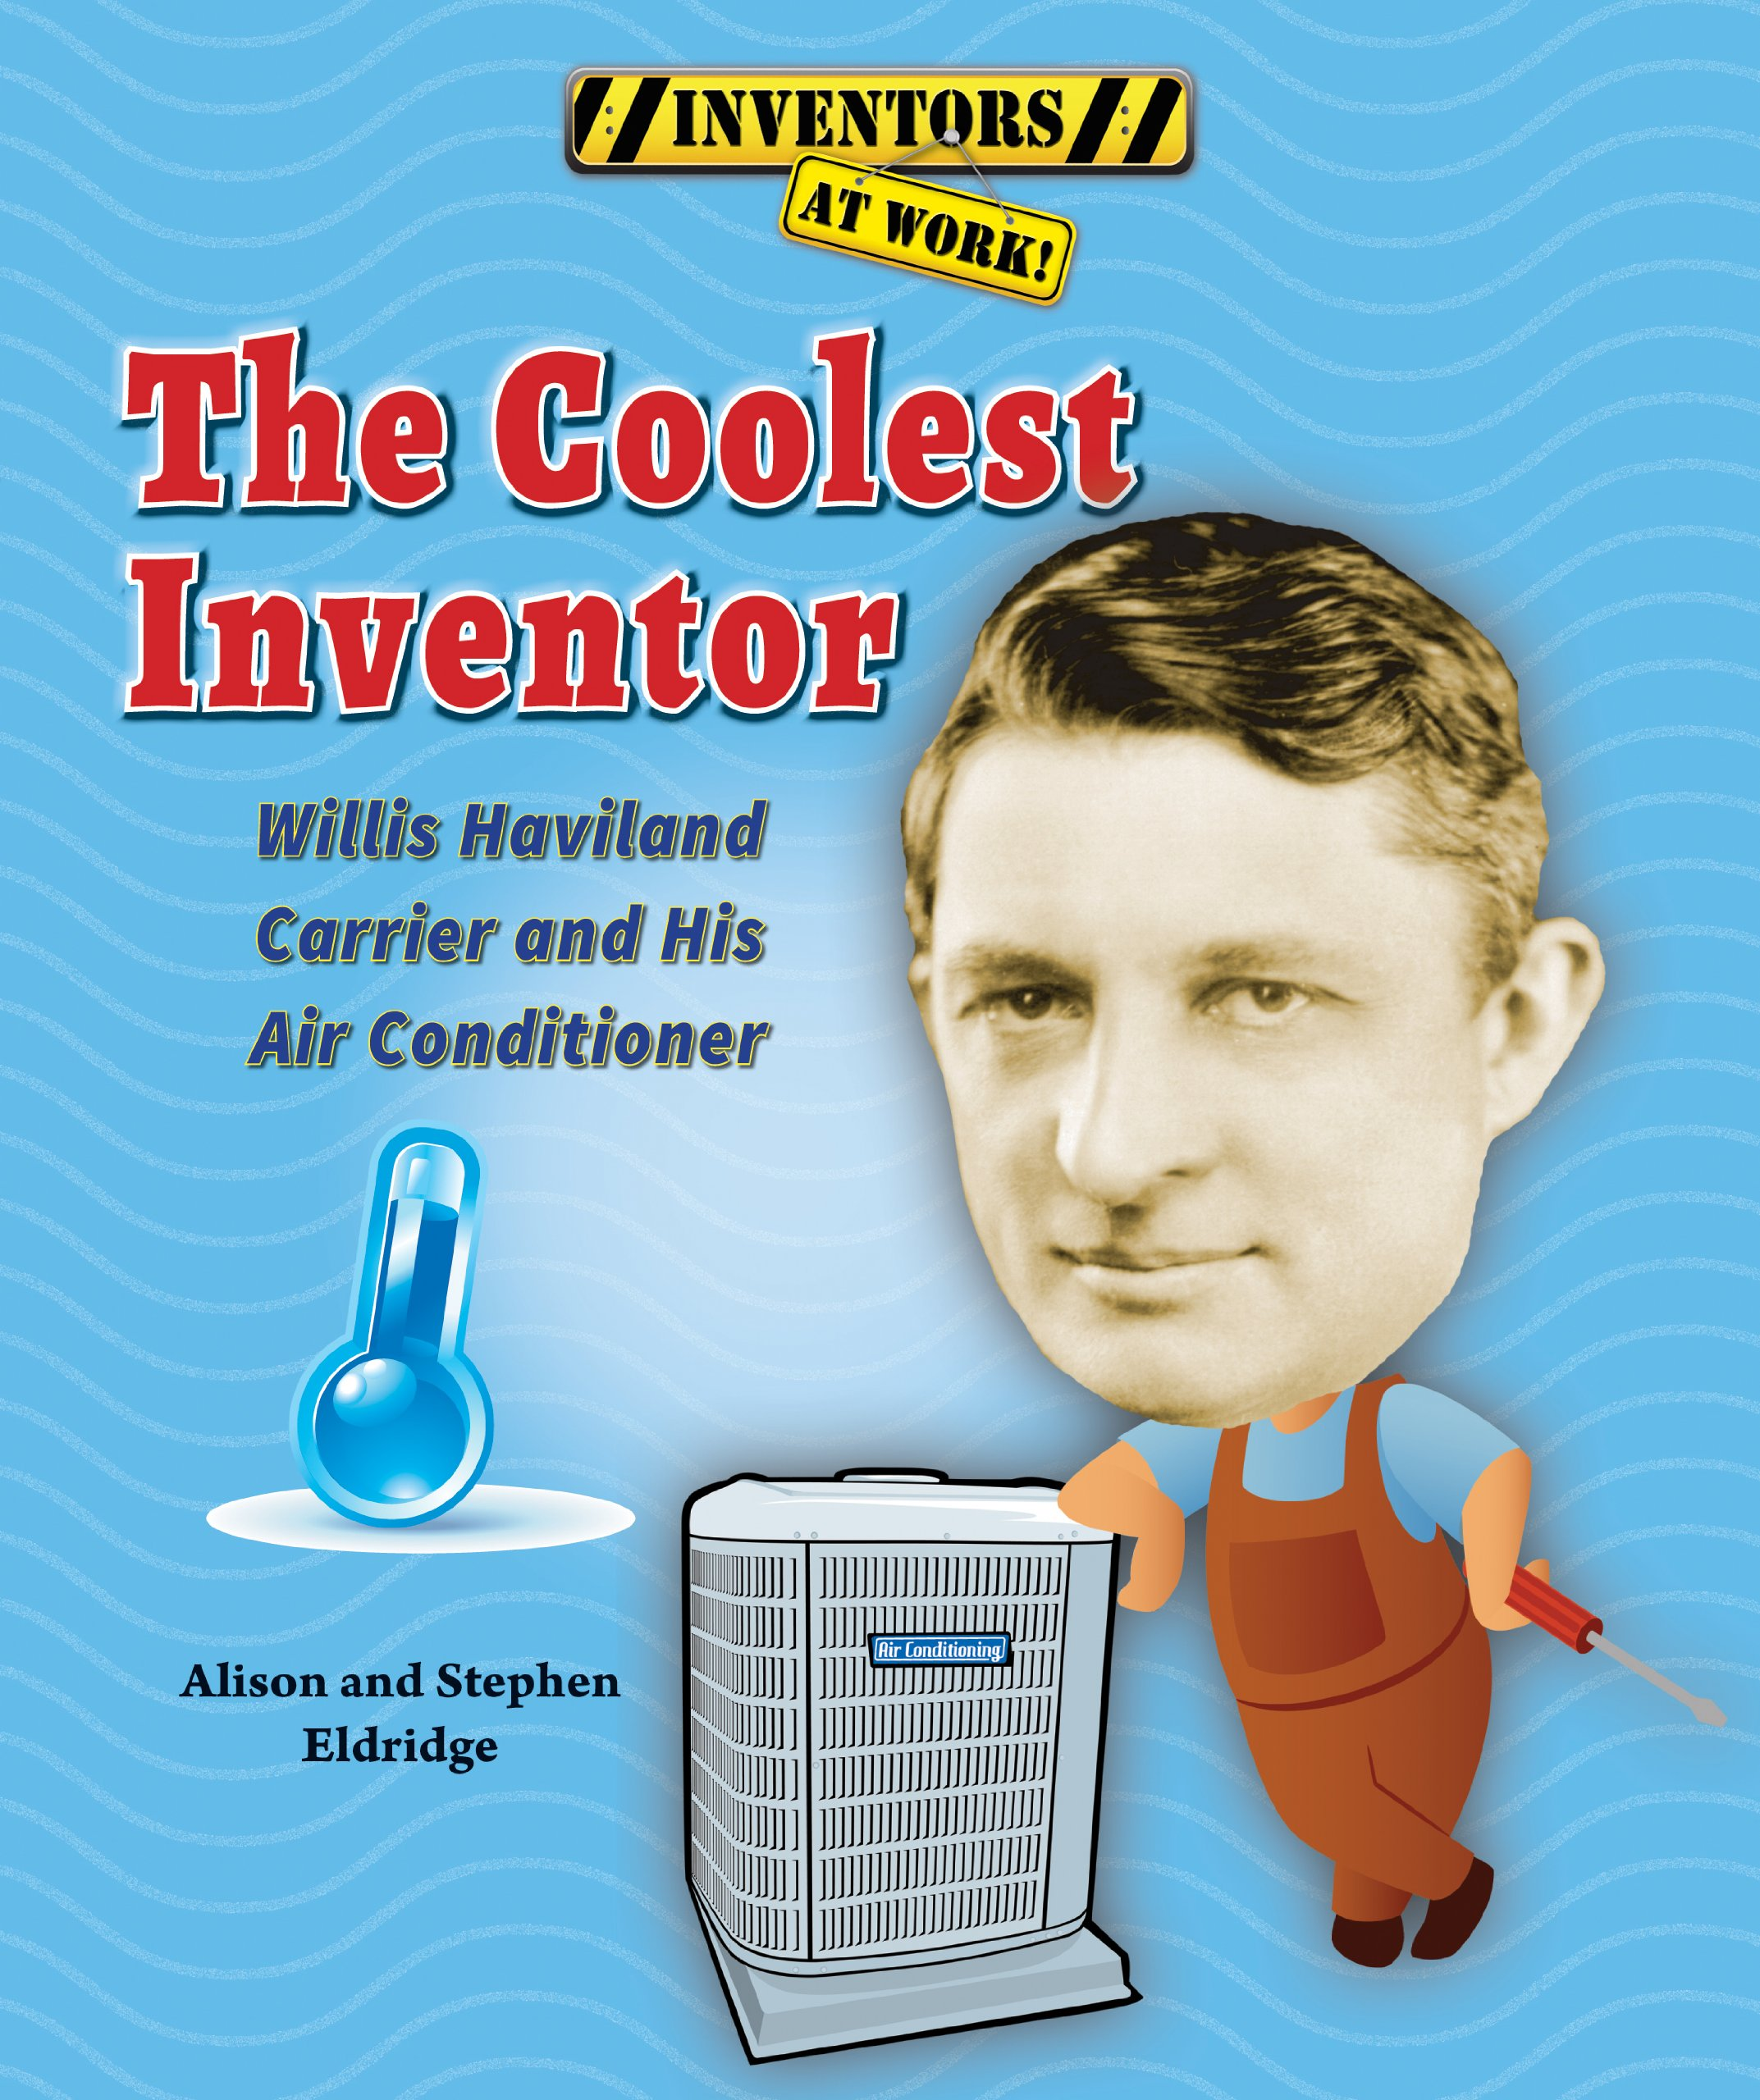 The Coolest Inventor: Willis Haviland Carrier and His Air Conditioner (Inventors at Work!) pdf